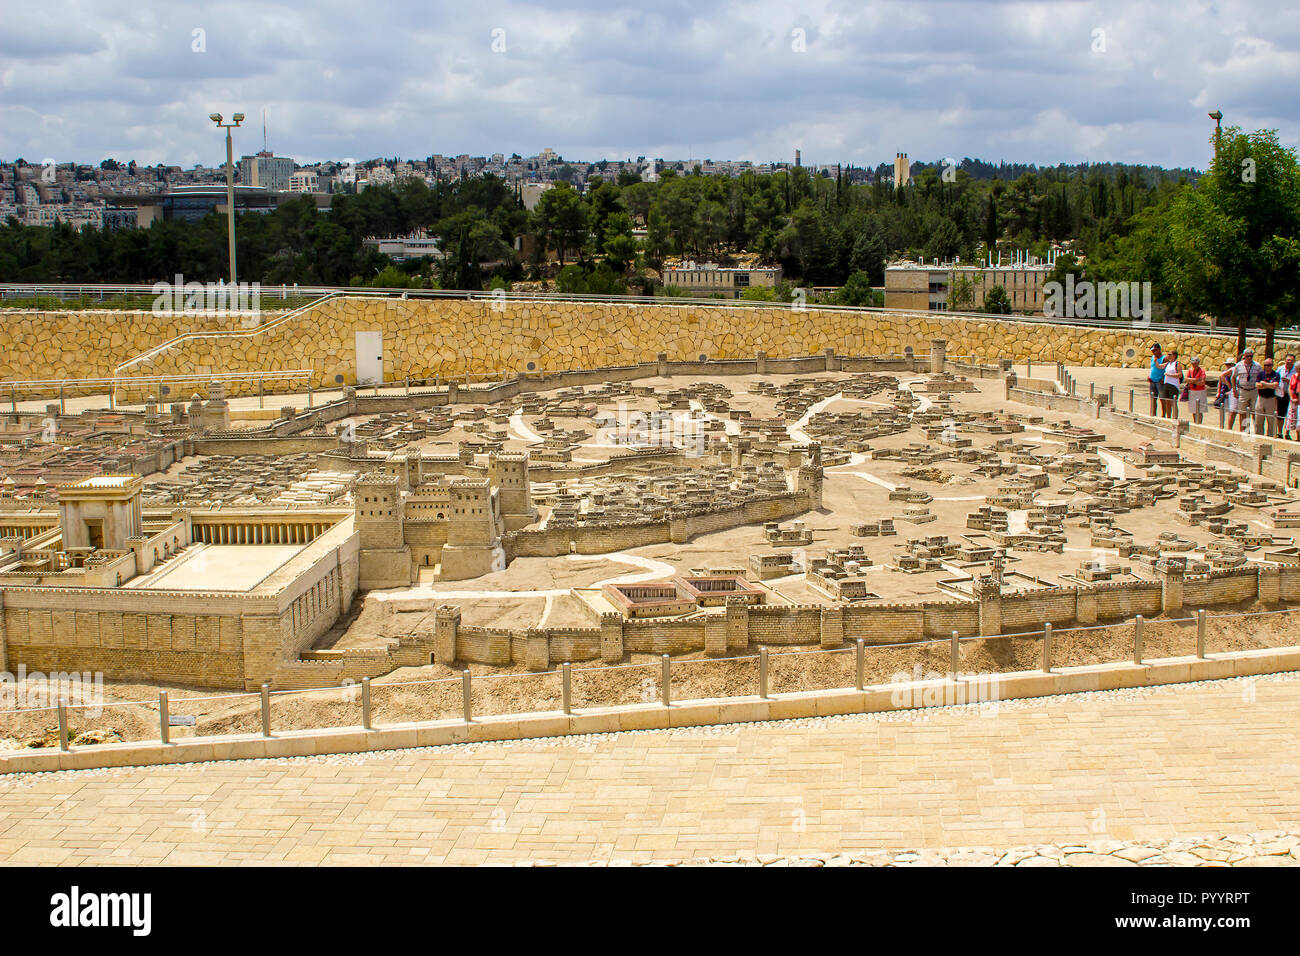 9 May 2018 Visitors walk around the outdoor scale model of the ancient city of Jerusalem at the Israel Museum in Jerusalem. The model has many arbitra Stock Photo